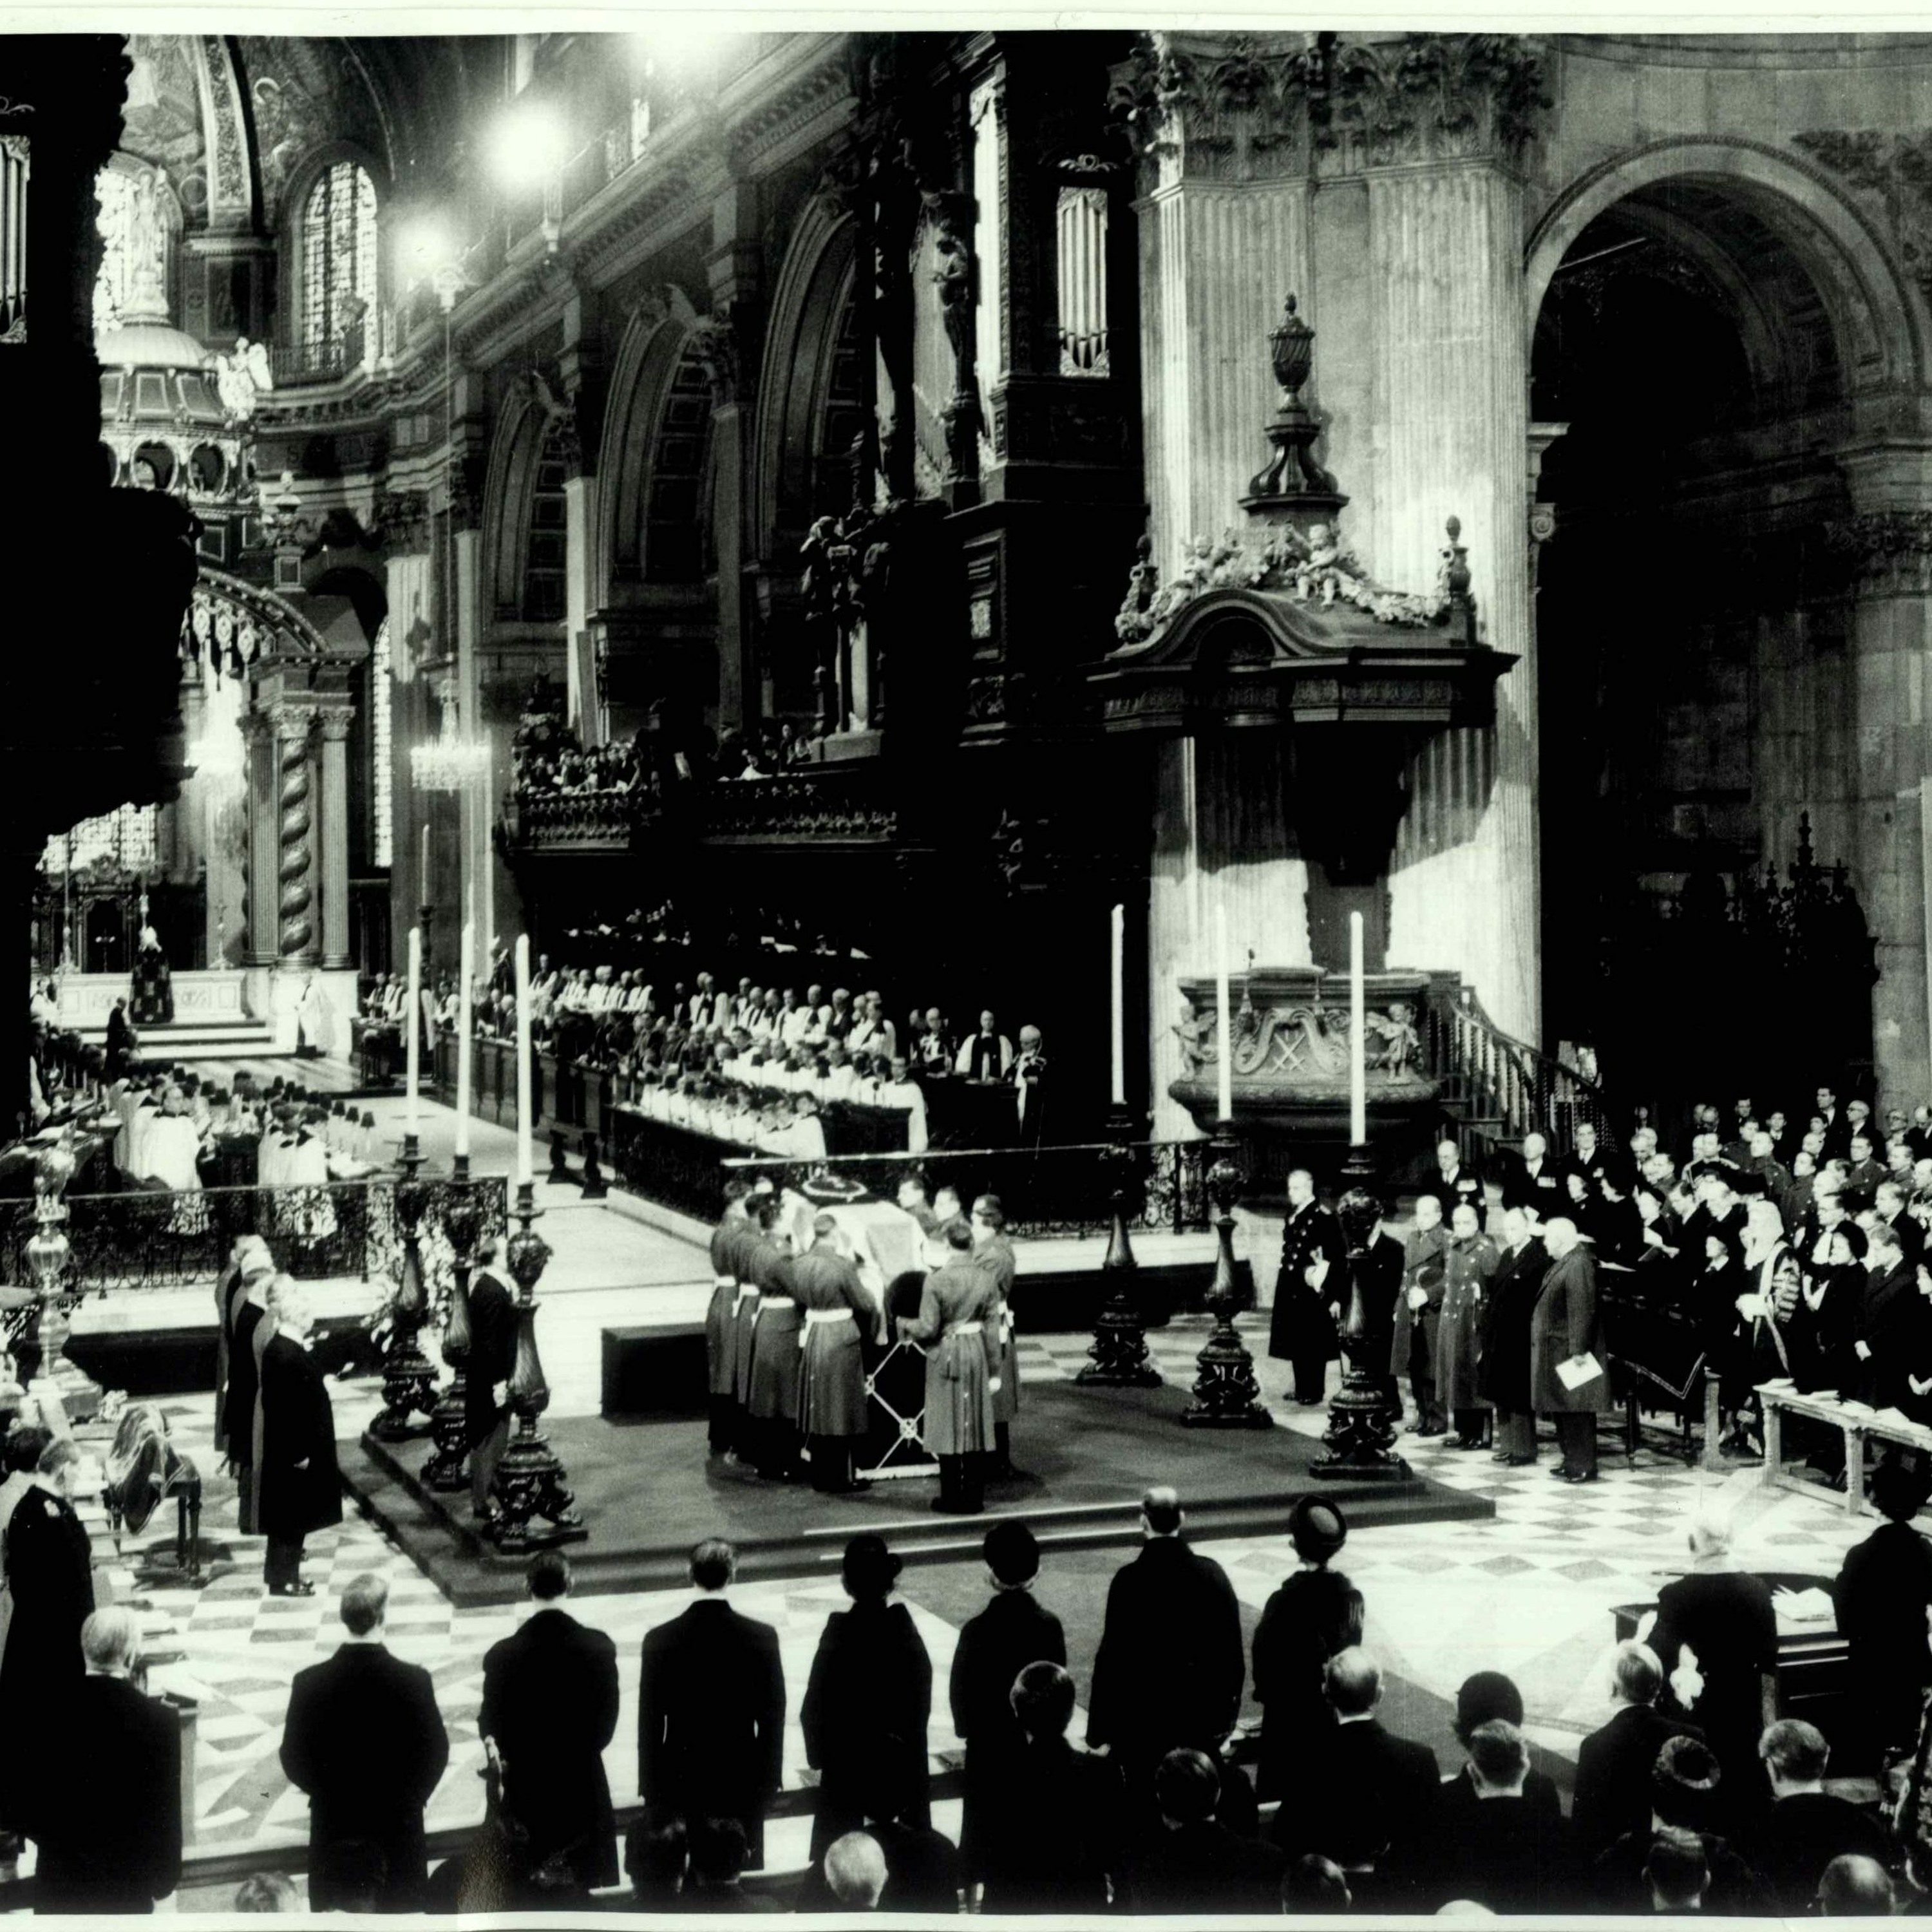 Stories from St Paul's: Winston Churchill and St Paul's